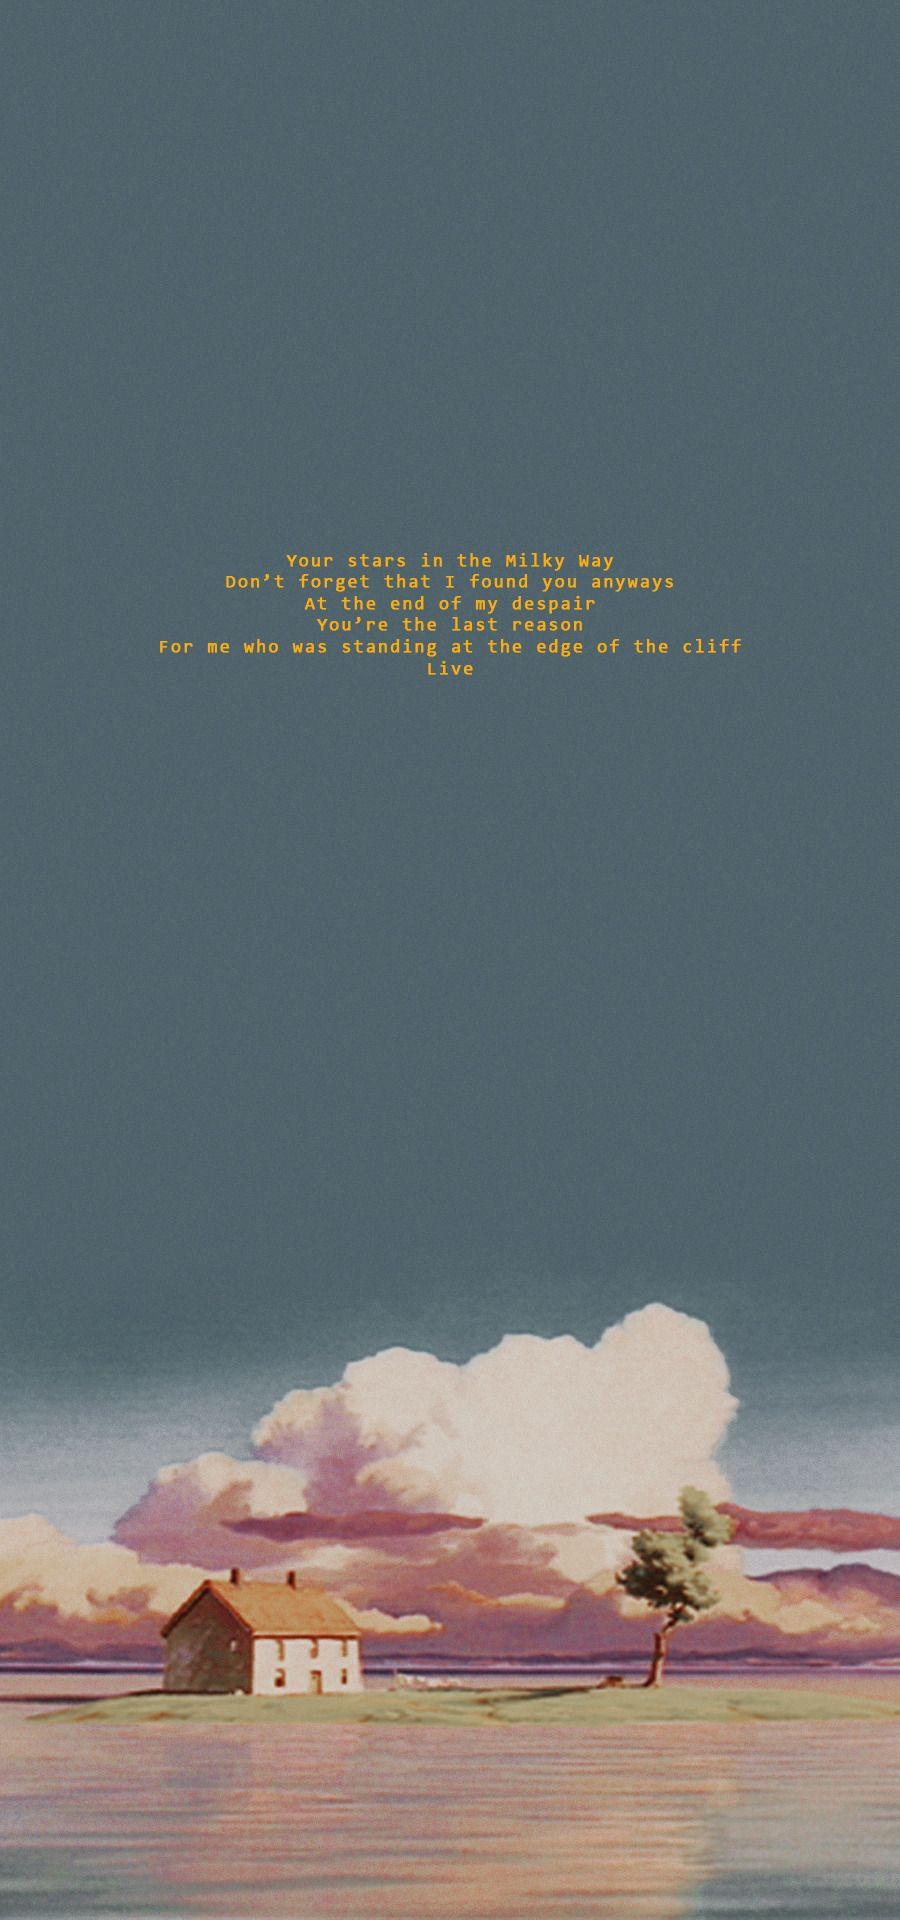 Tumblr Is A Place To Express Yourself Discover Yourself And Bond Over The Stuff You Love It Bts Wallpaper Lyrics Bts Lyric Bts Aesthetic Wallpaper For Phone Aesthetic bts lyrics wallpaper laptop